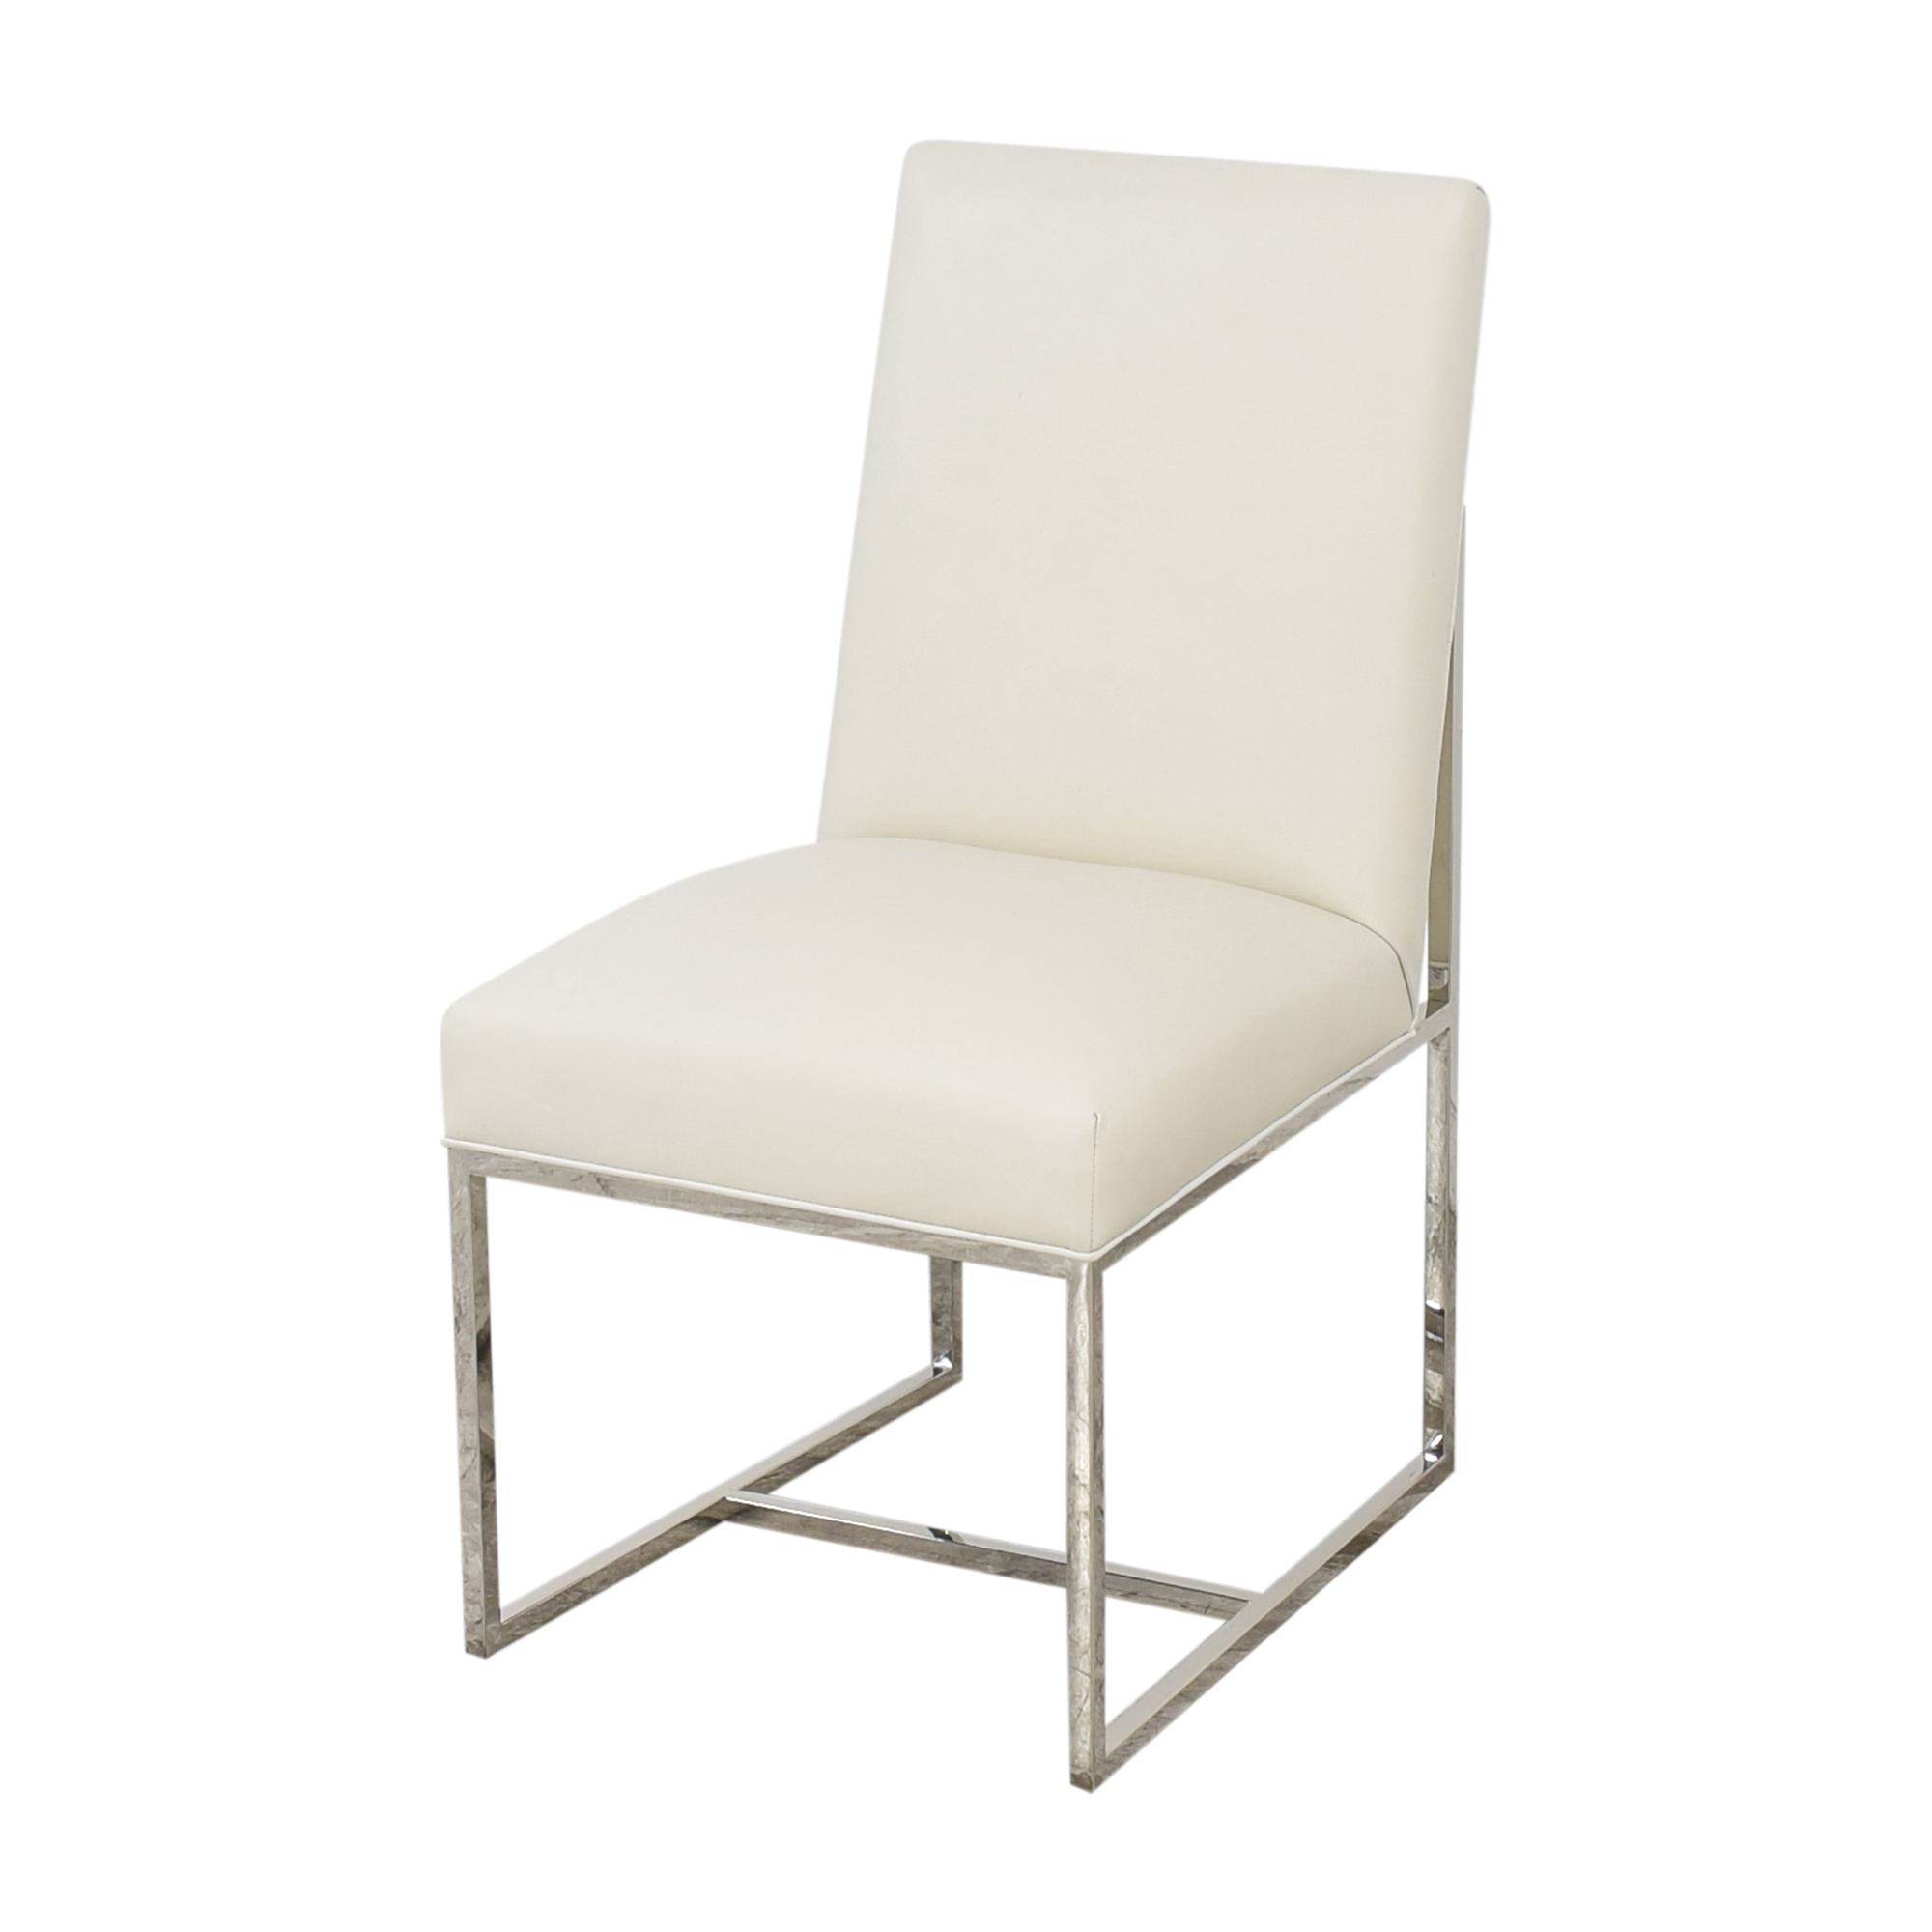 Restoration Hardware Grant Leather Side Chairs / Chairs